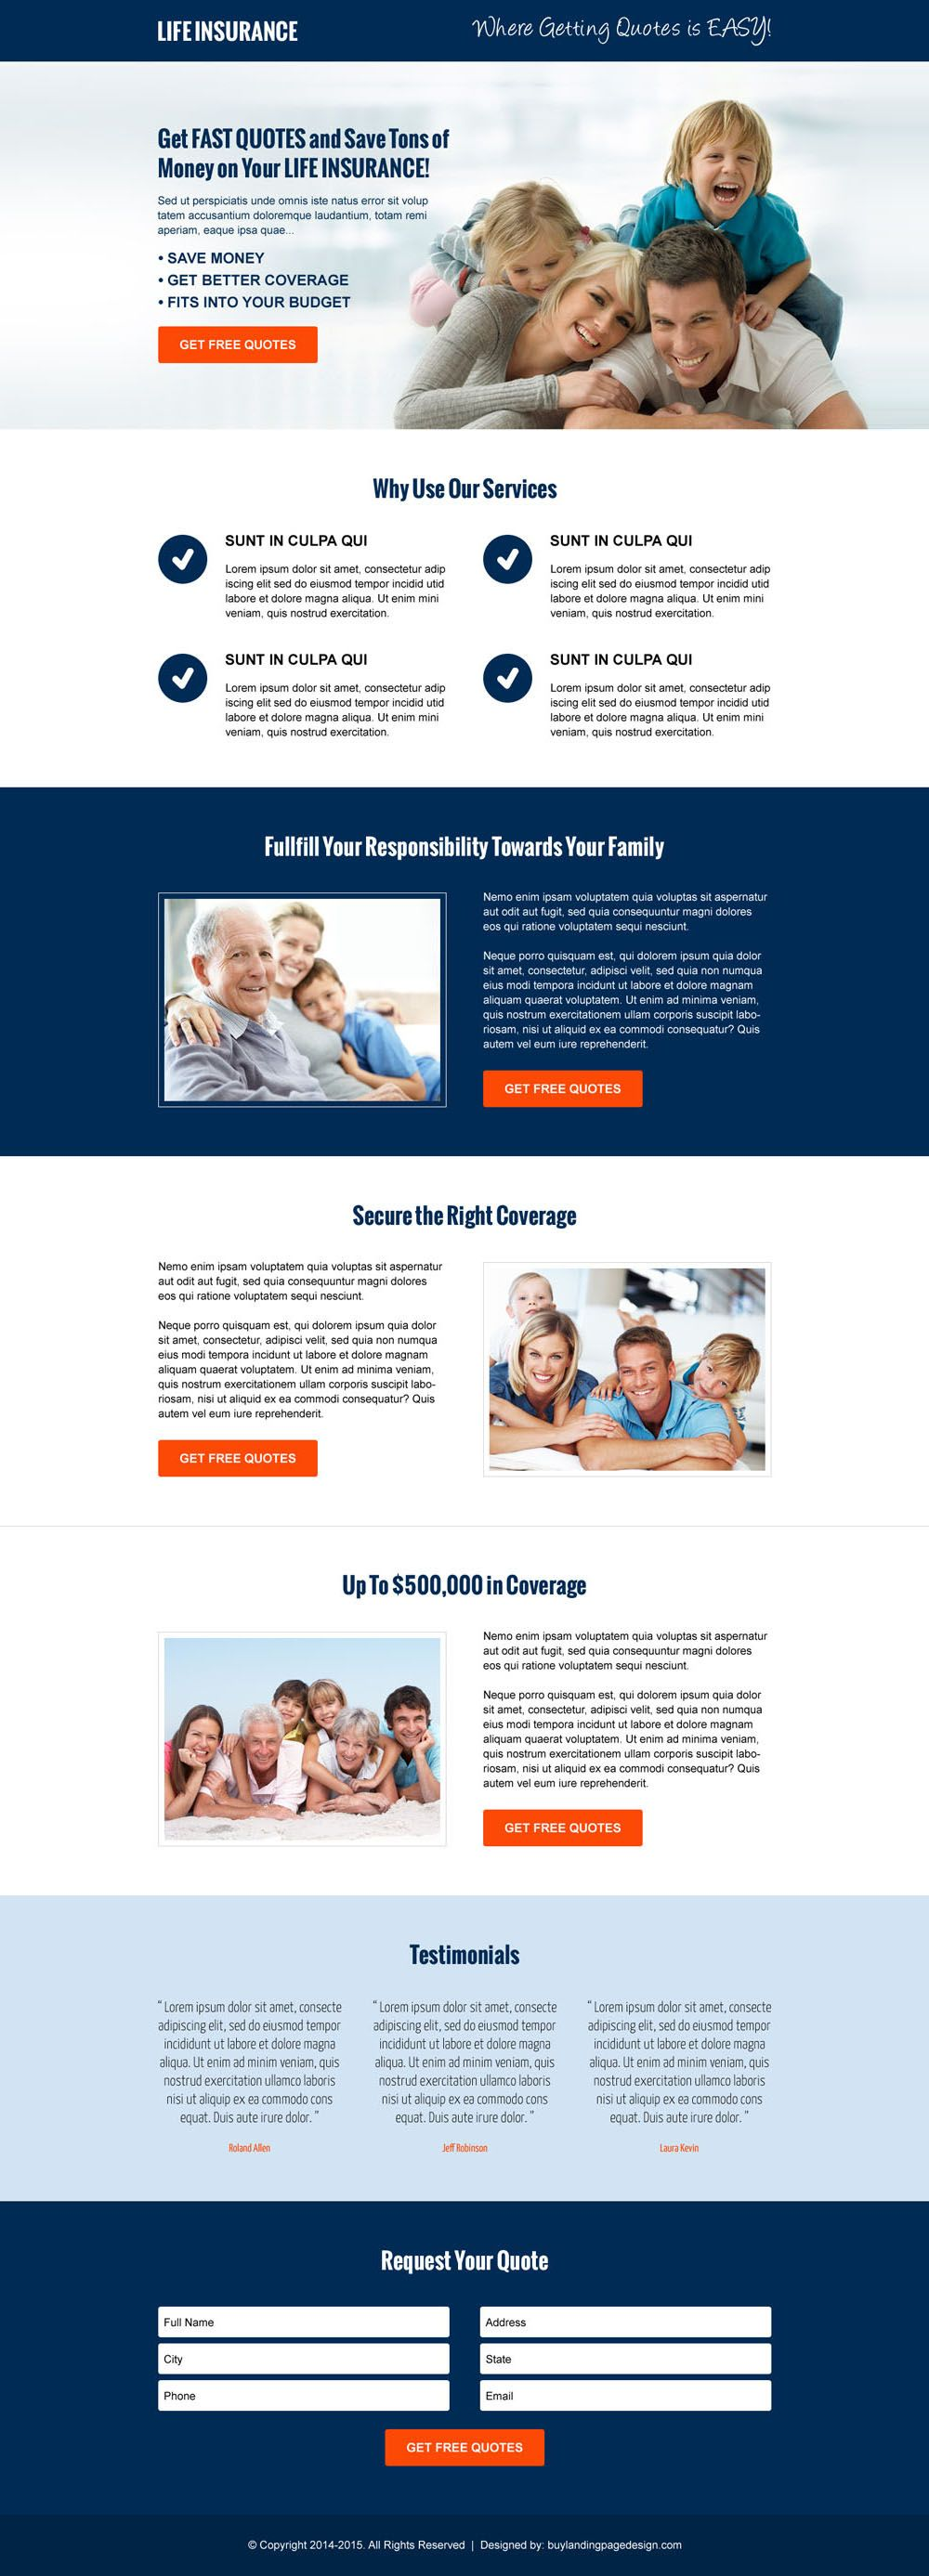 Life Insurance Free Quote Money Saving Life Insurance Free Quote Cta And Lead Capture